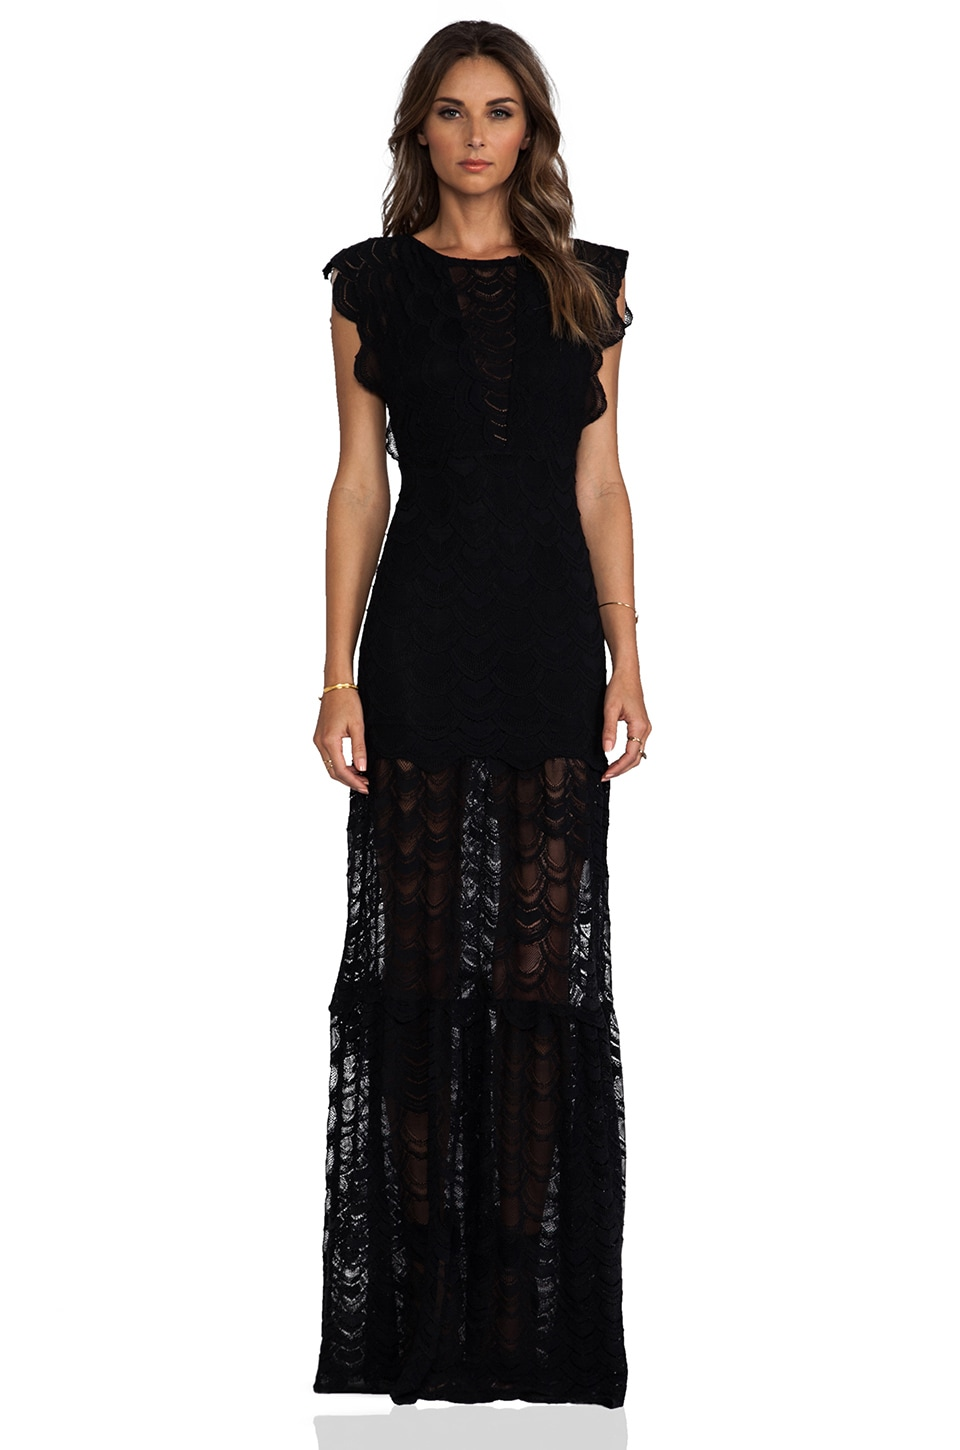 Nightcap Caletto Maxi Dress in Black